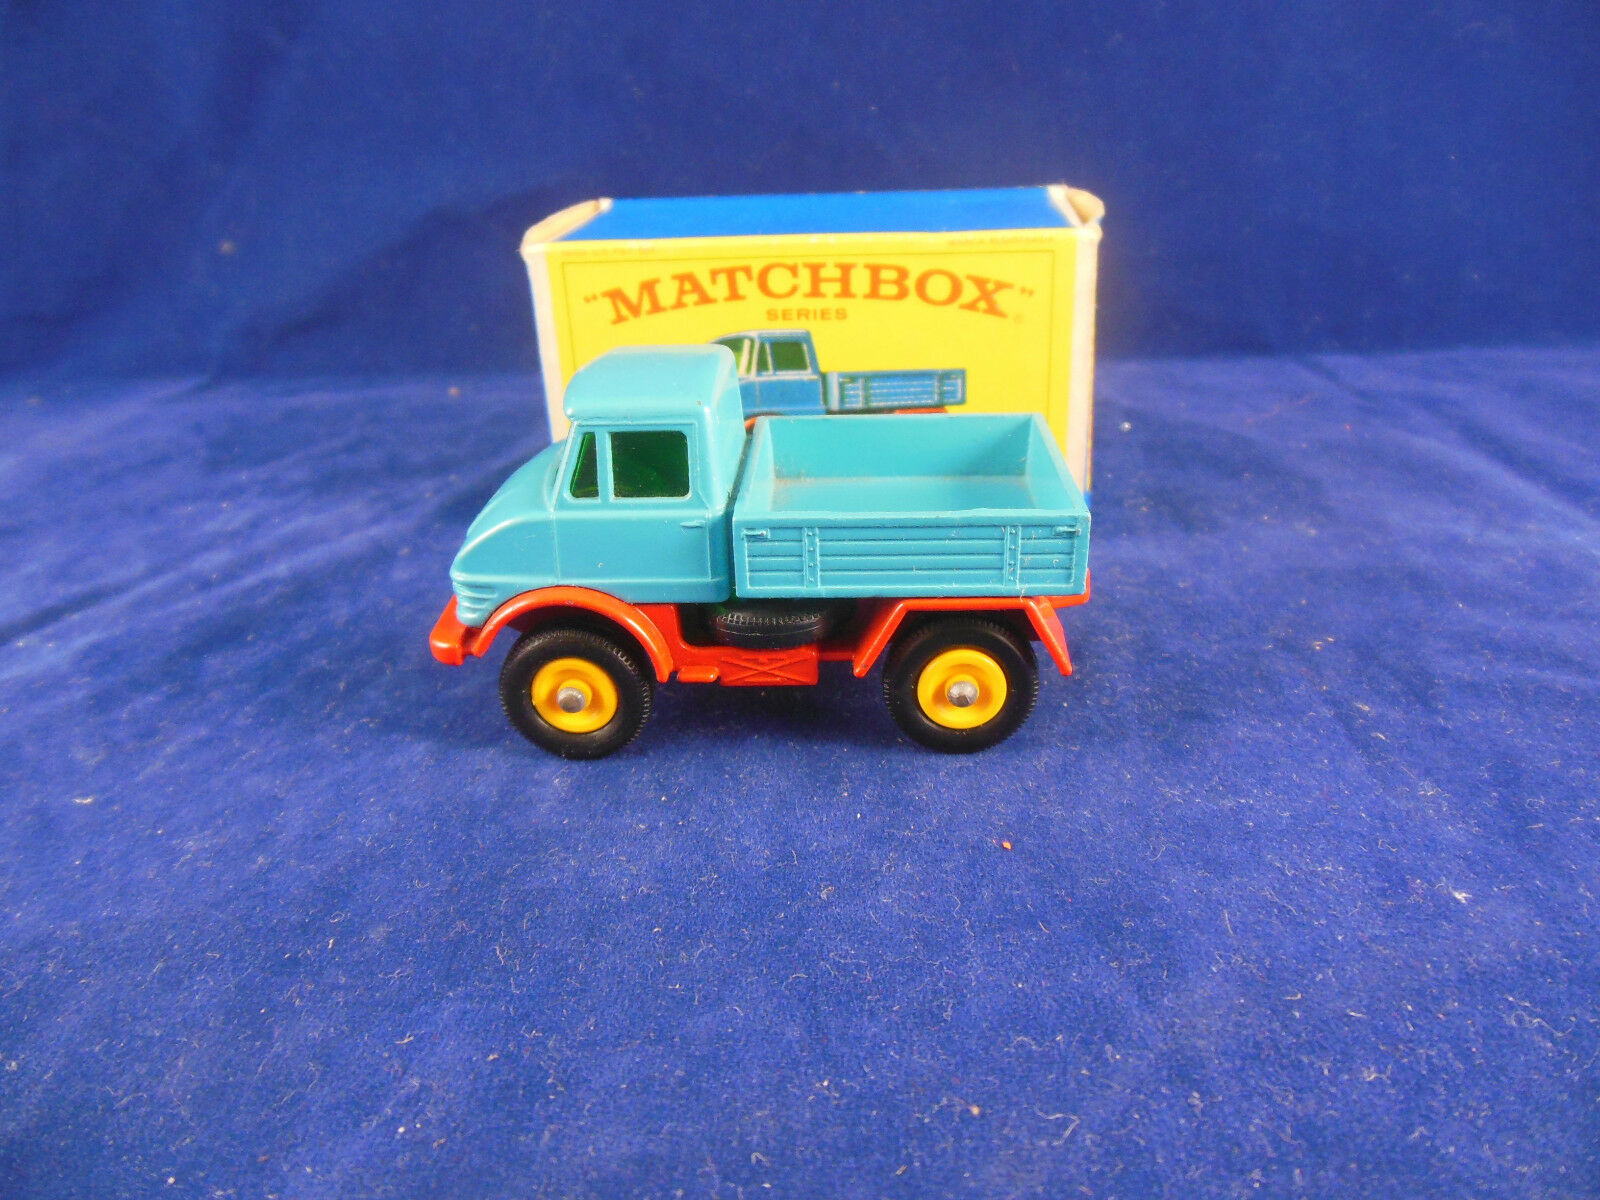 Matchbox 49 b Mercedes Benz Unimog in bluee over Red Chassis